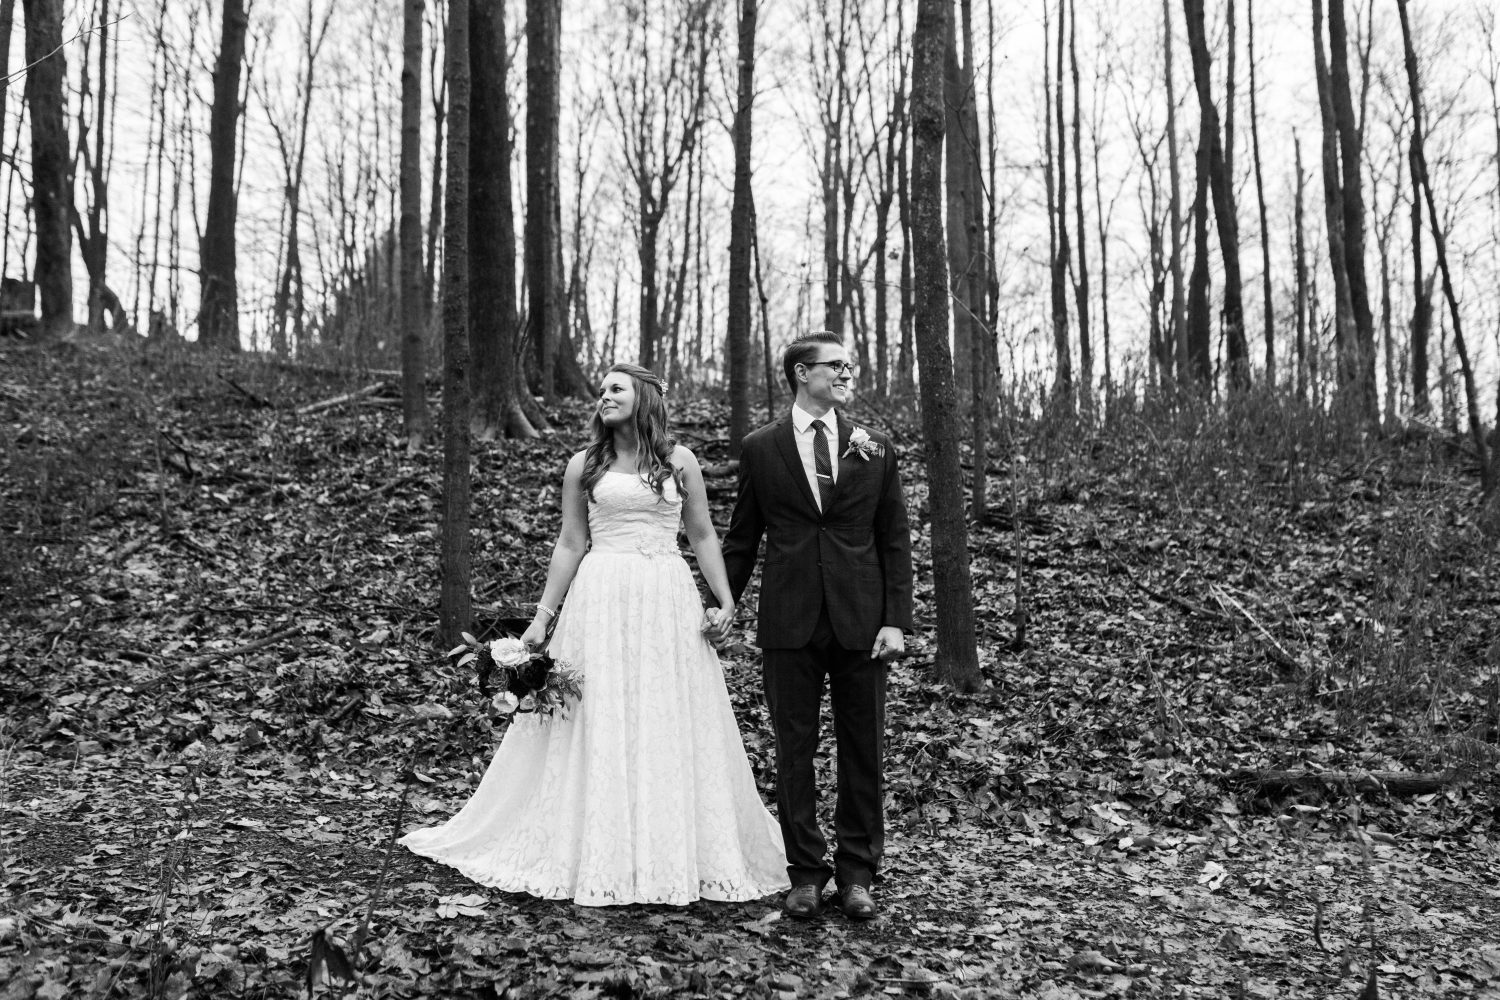 Intimate Tree Top Wedding | Easterday Creative | Adventurous wedding photographer and storyteller